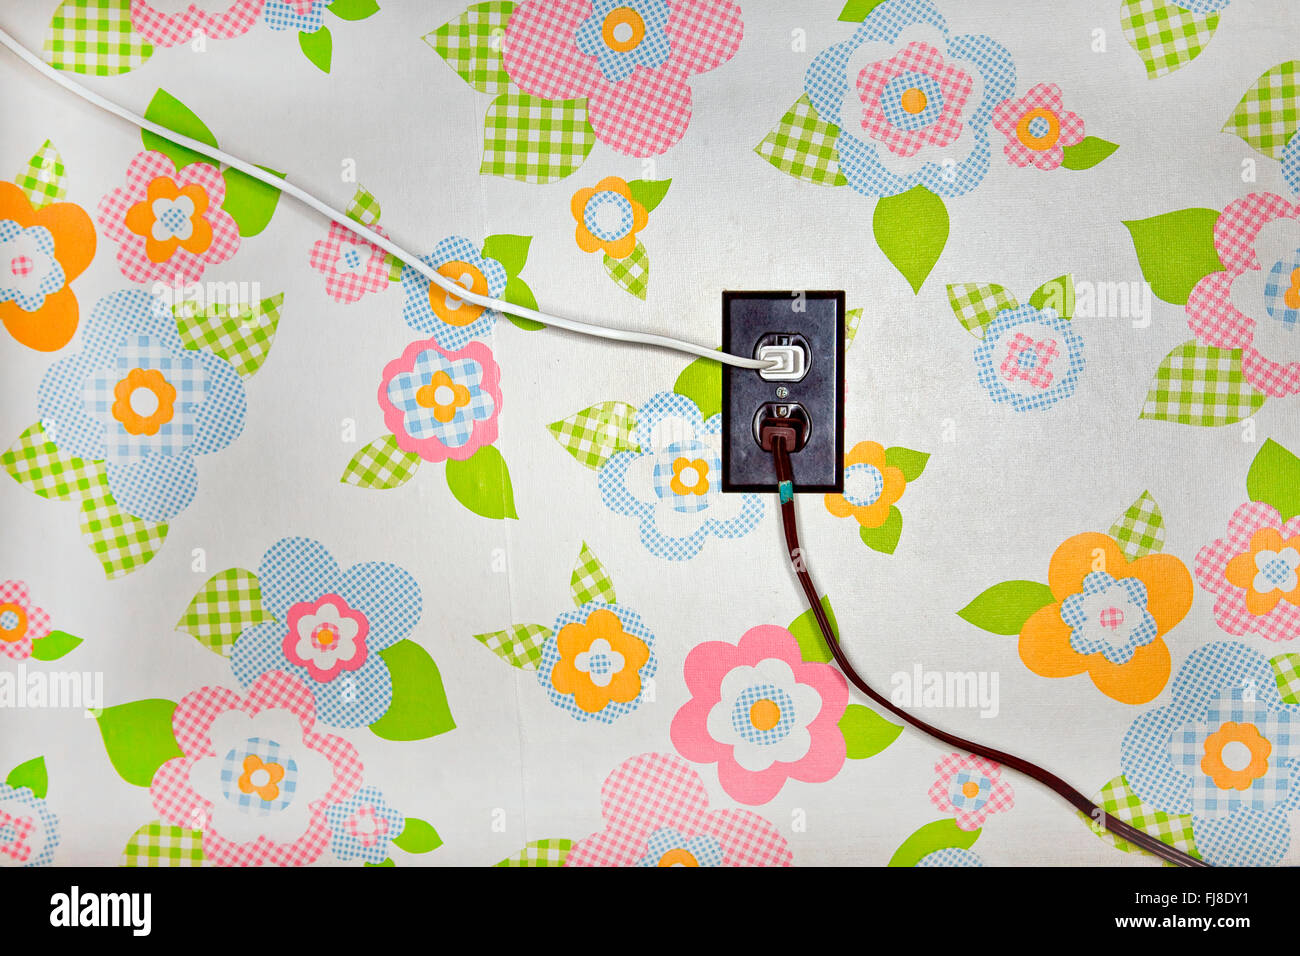 Two power cords coming out of an outlet on a flowered wallpaper wall two power cords coming out of an outlet on a flowered wallpaper wall mightylinksfo